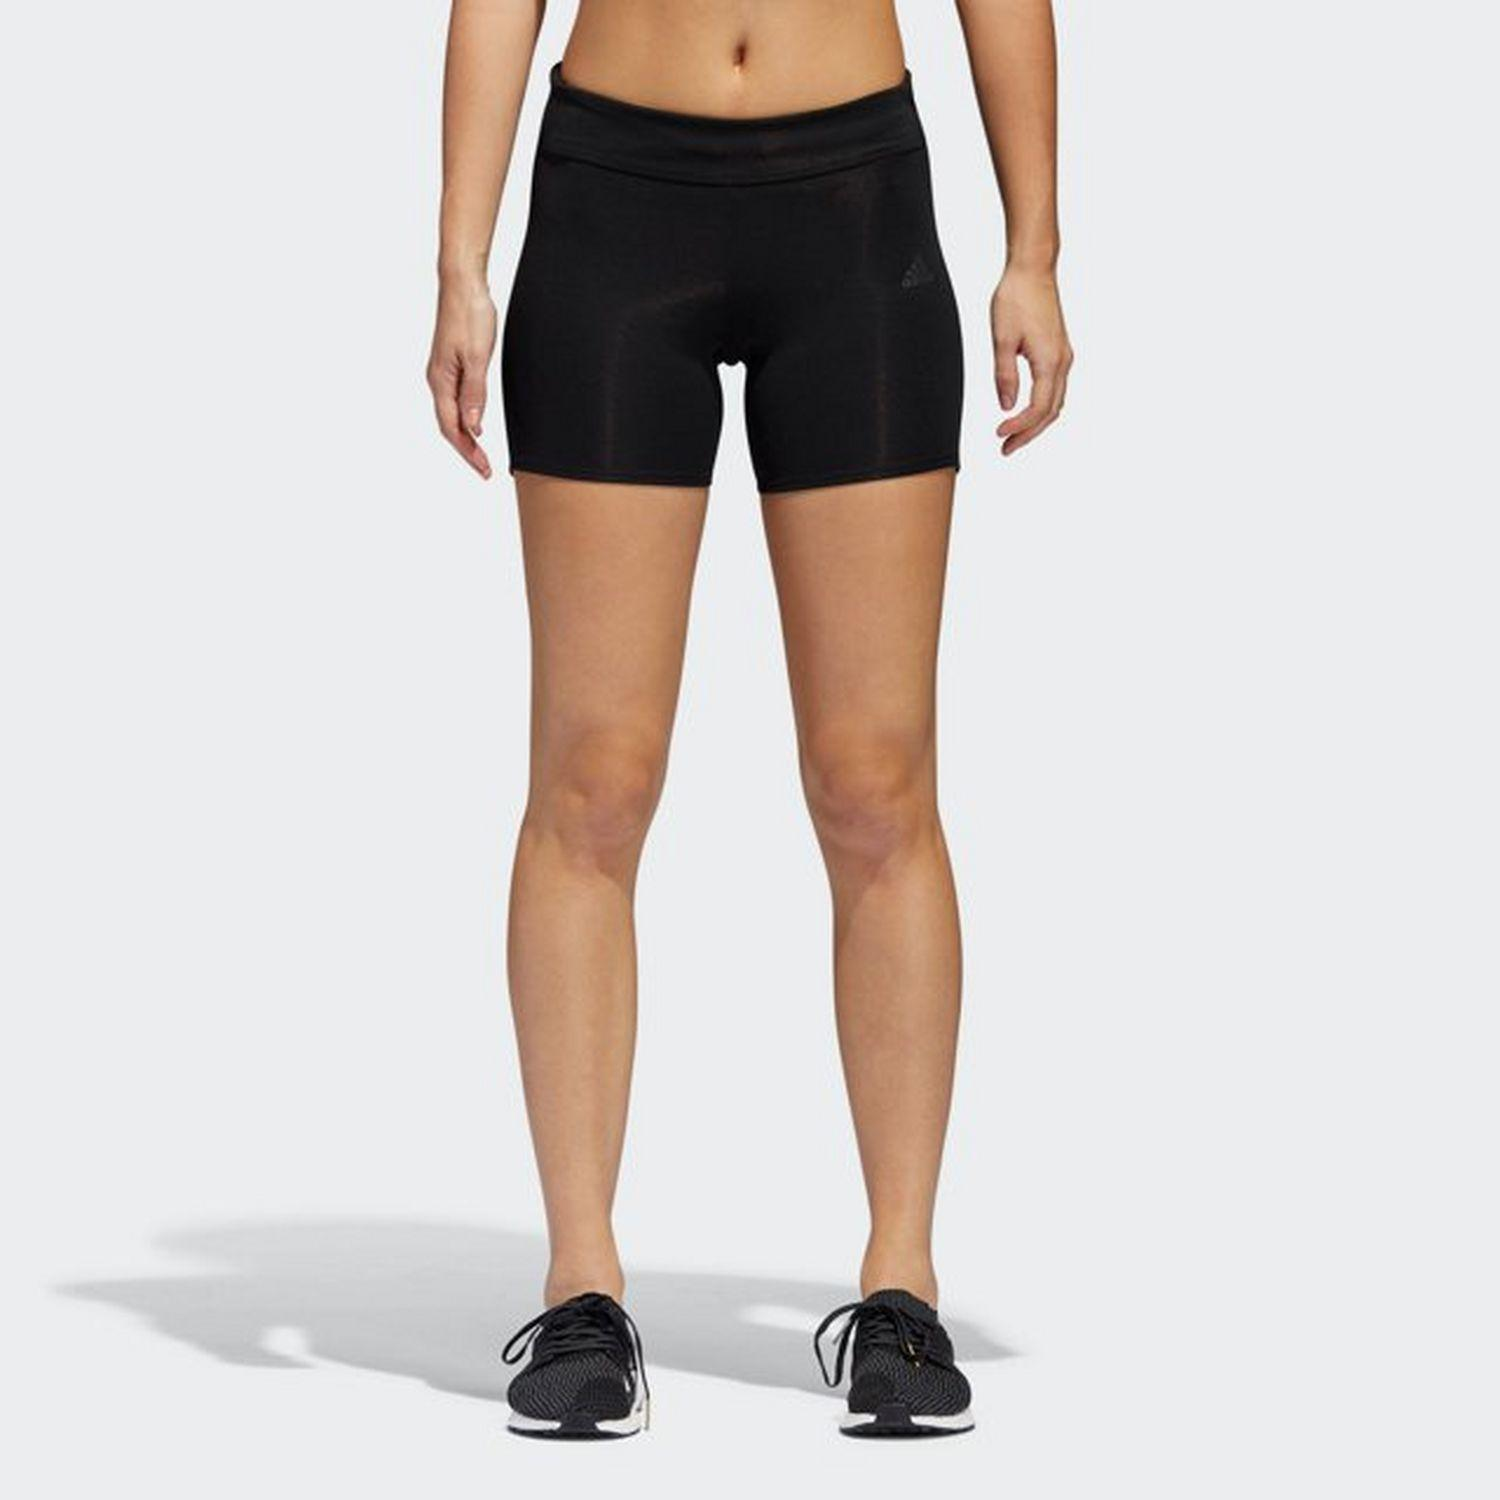 324d6542e32 Lyst - adidas Response Short Tights in Black